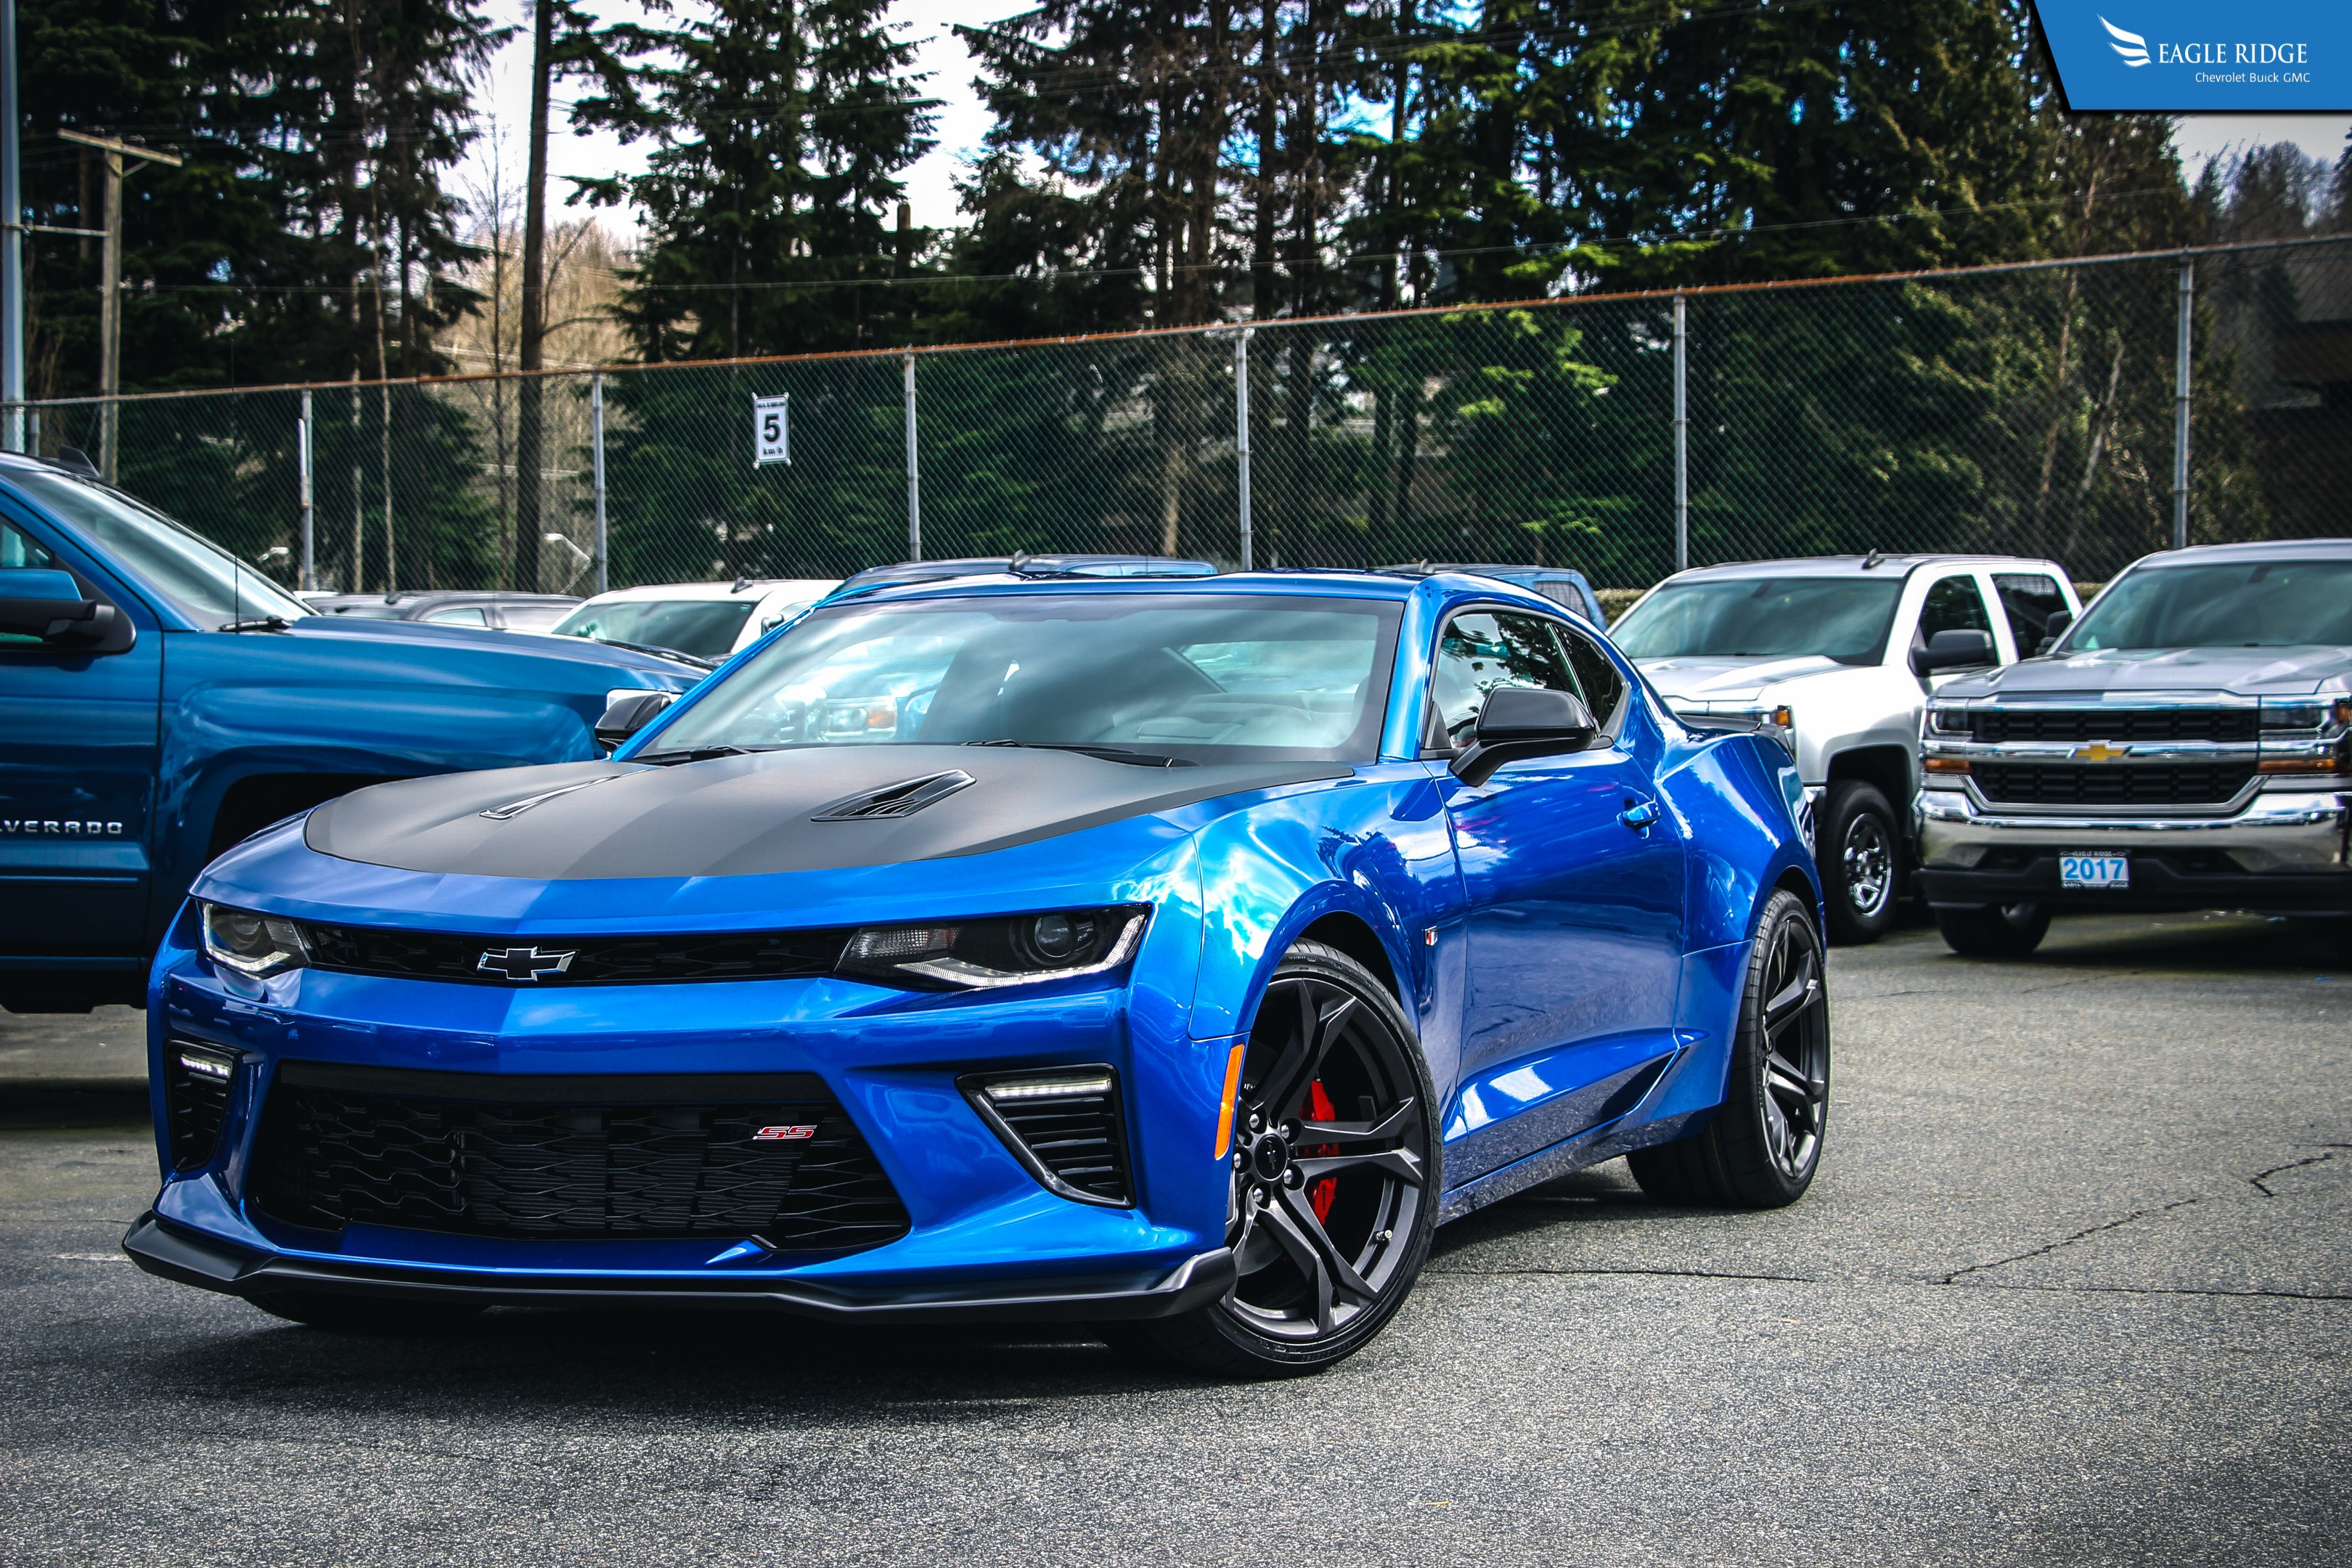 Wallpapers Eagle Ridge Gm Coquitlam Gm Cars Bc